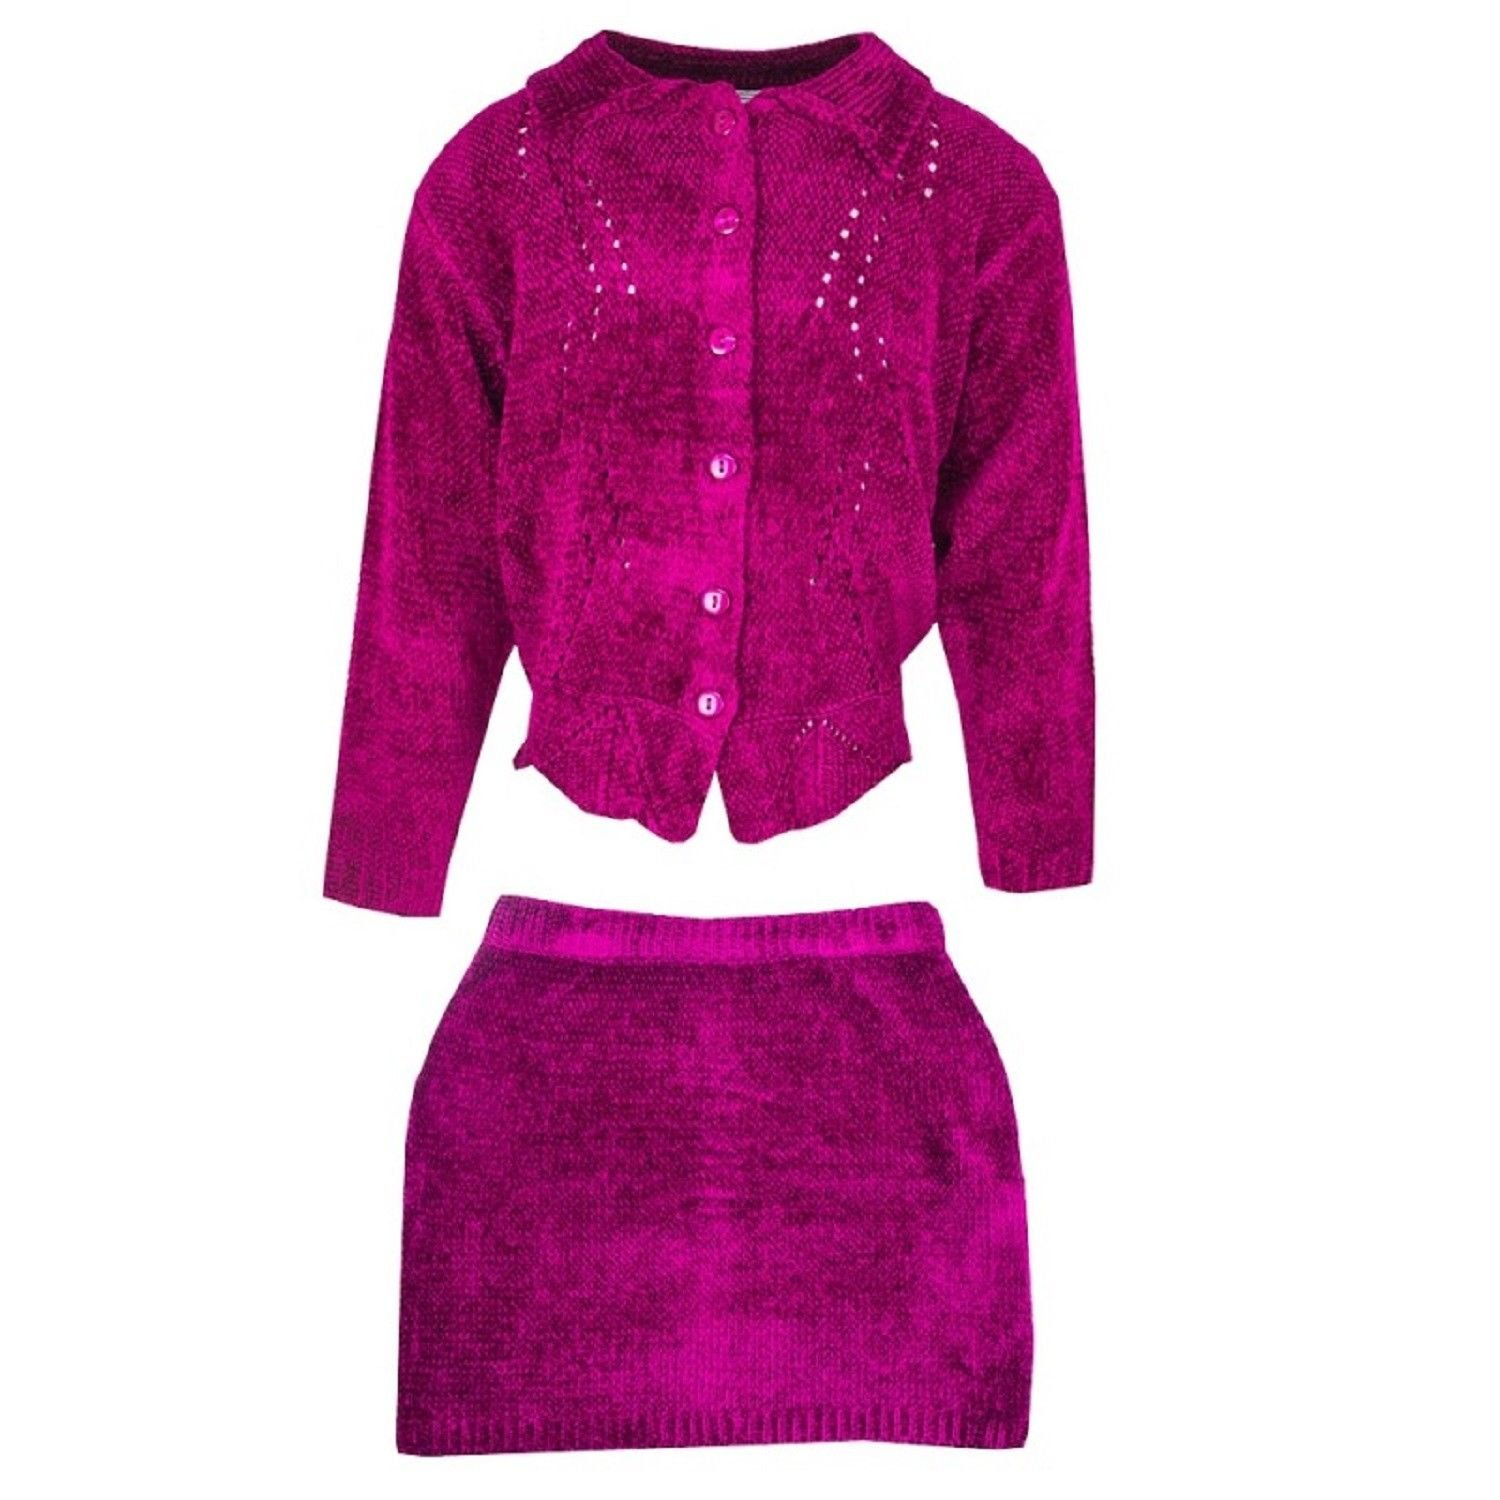 Ex-Store Girls Skirt Cardigan 2 Piece Set Chenille Knit Winter Outfit